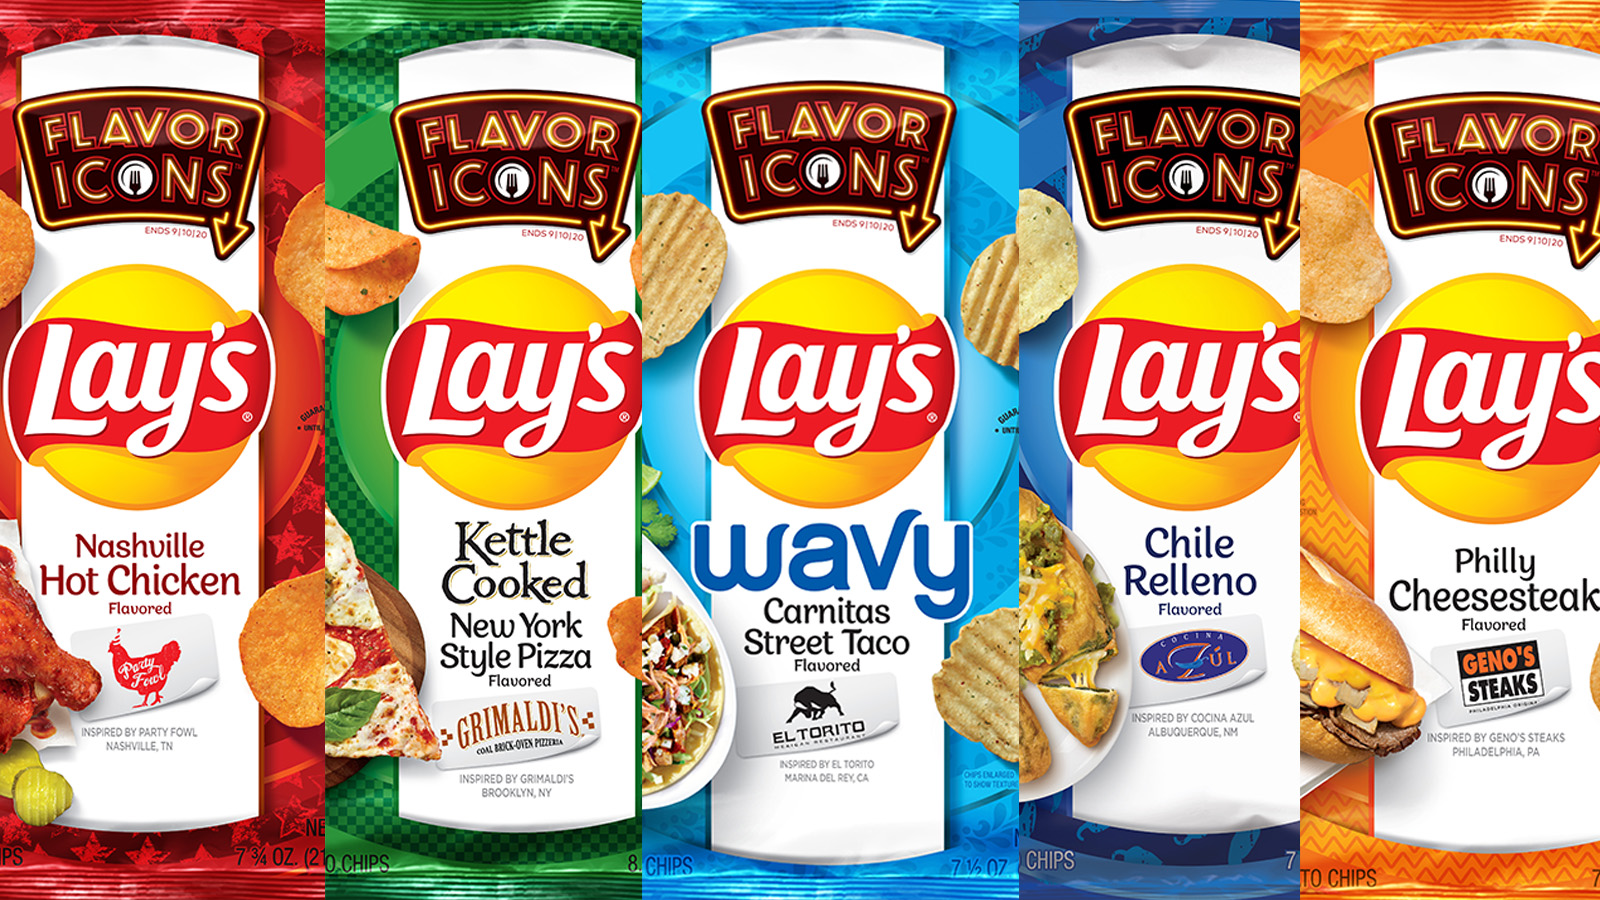 betting pro lays flavors